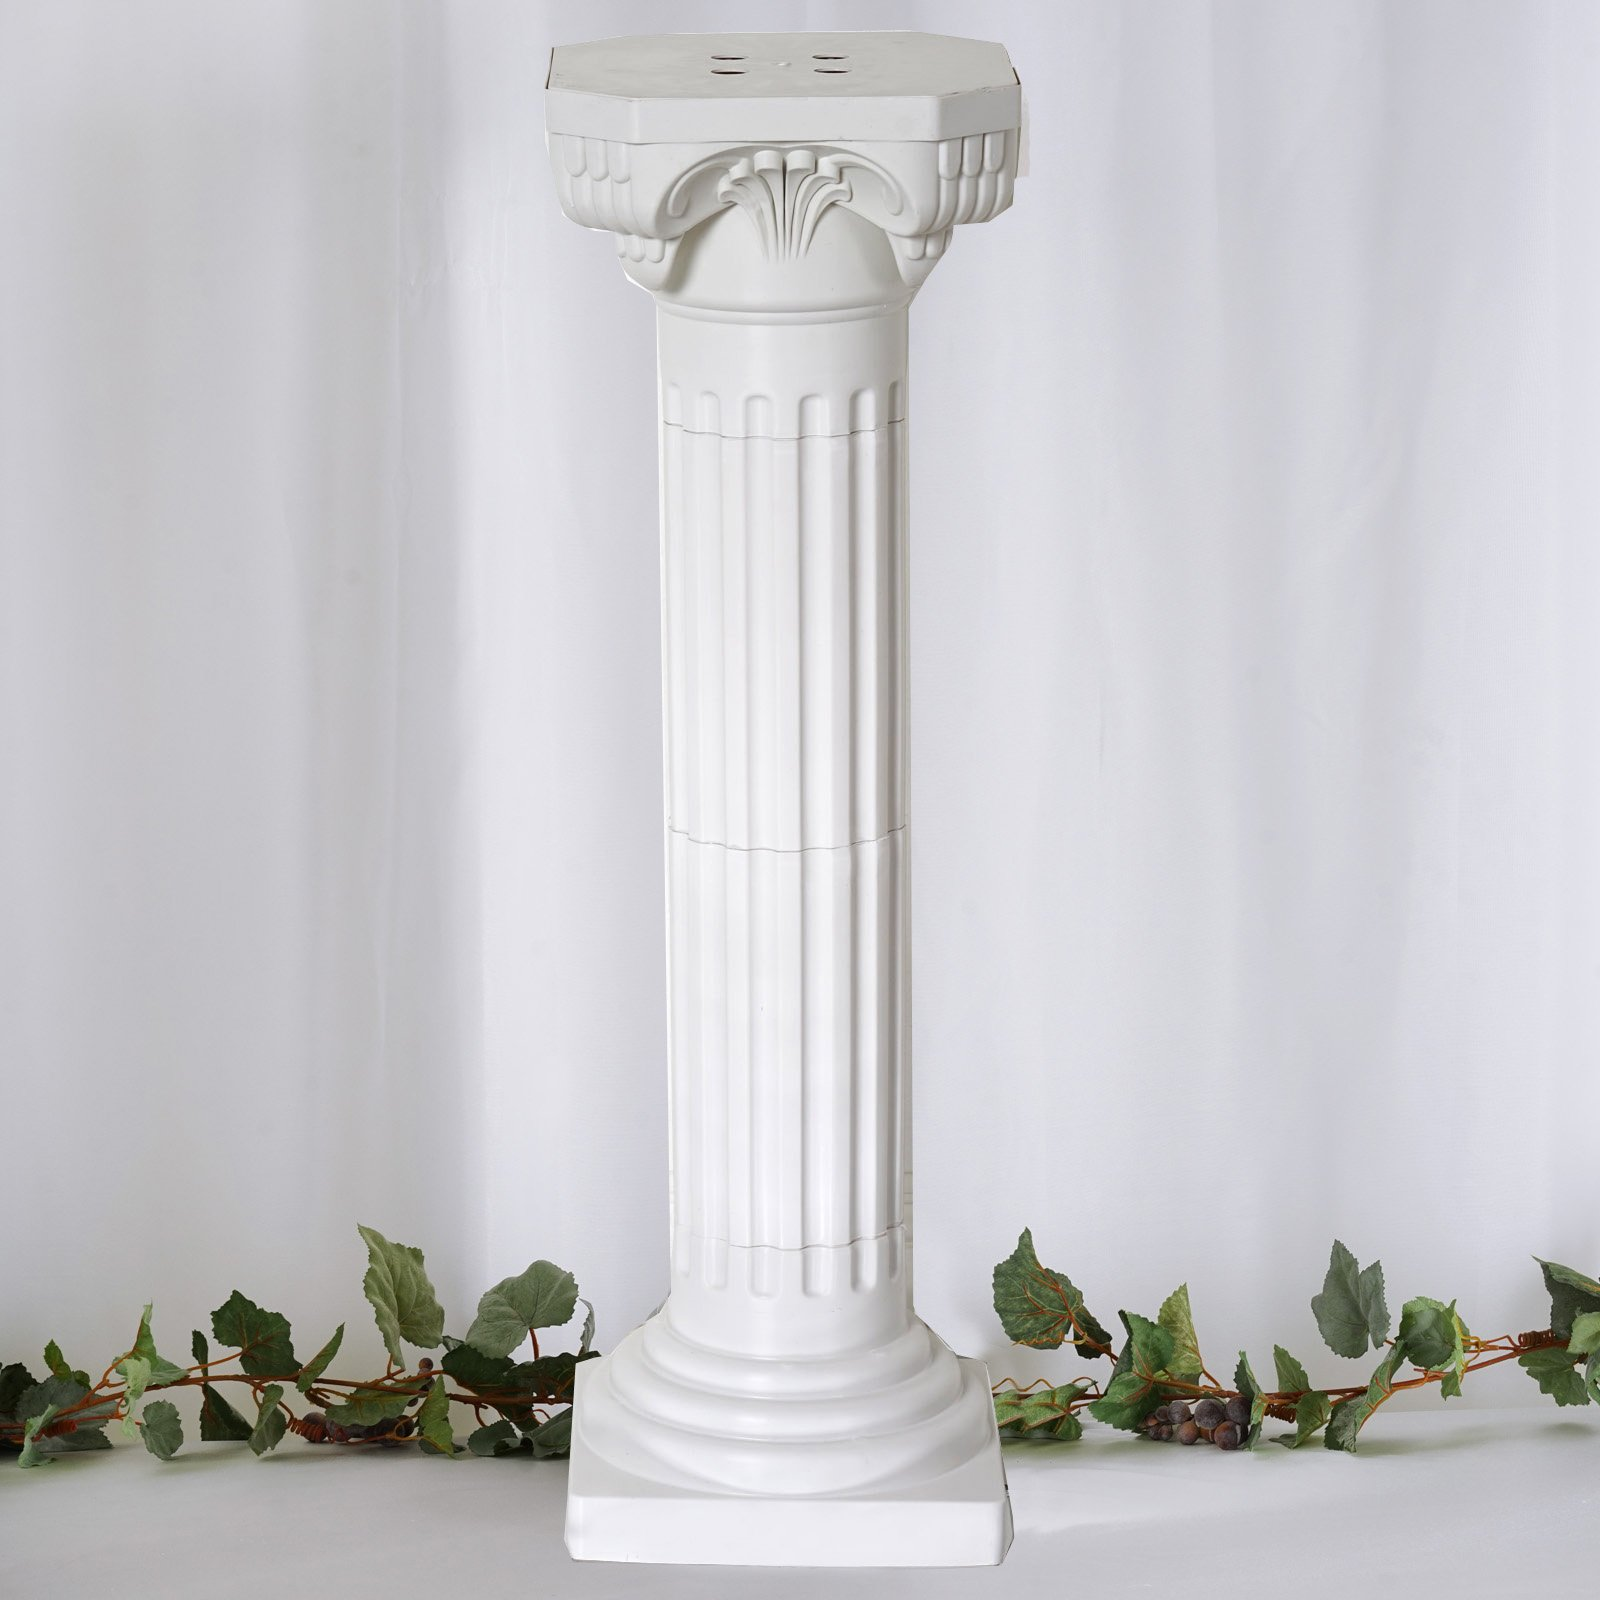 Efavormart 4 Pillars/Set Roman Decorative Wedding Party Columns PVC Pillars 36'' Height (Adjustable) by Efavormart